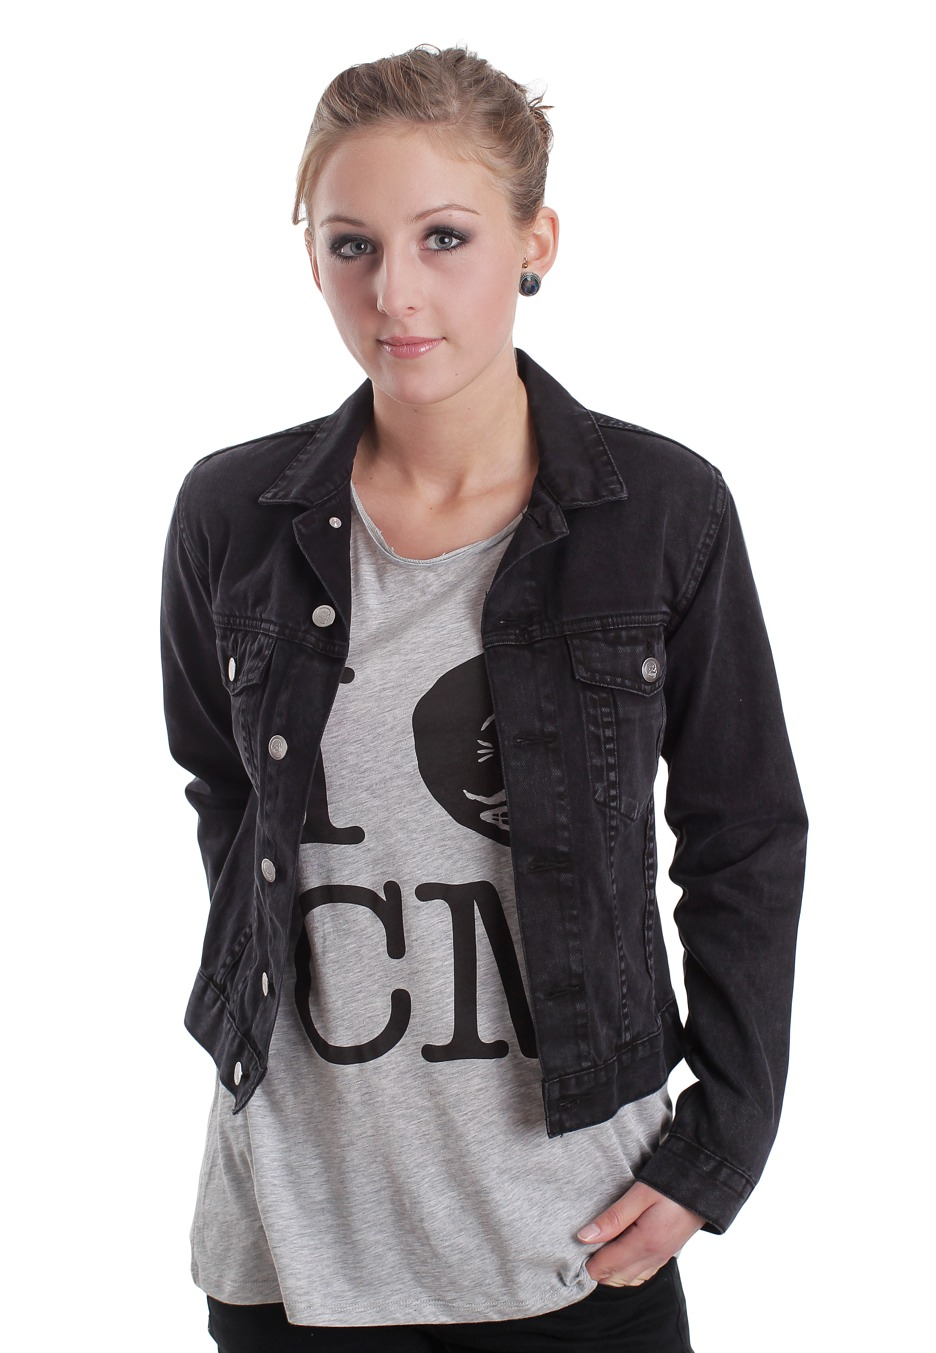 Buy low price, high quality girl black denim jacket with worldwide shipping on tennesseemyblogw0.cf